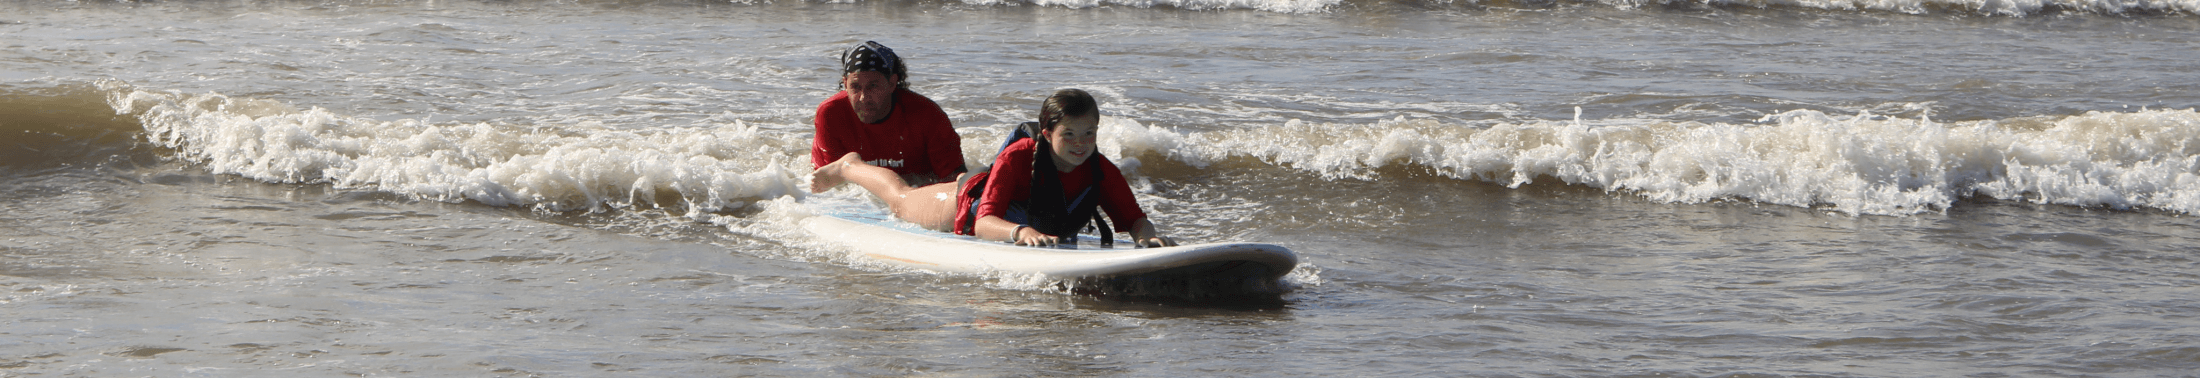 Man helps little girl learn to surf